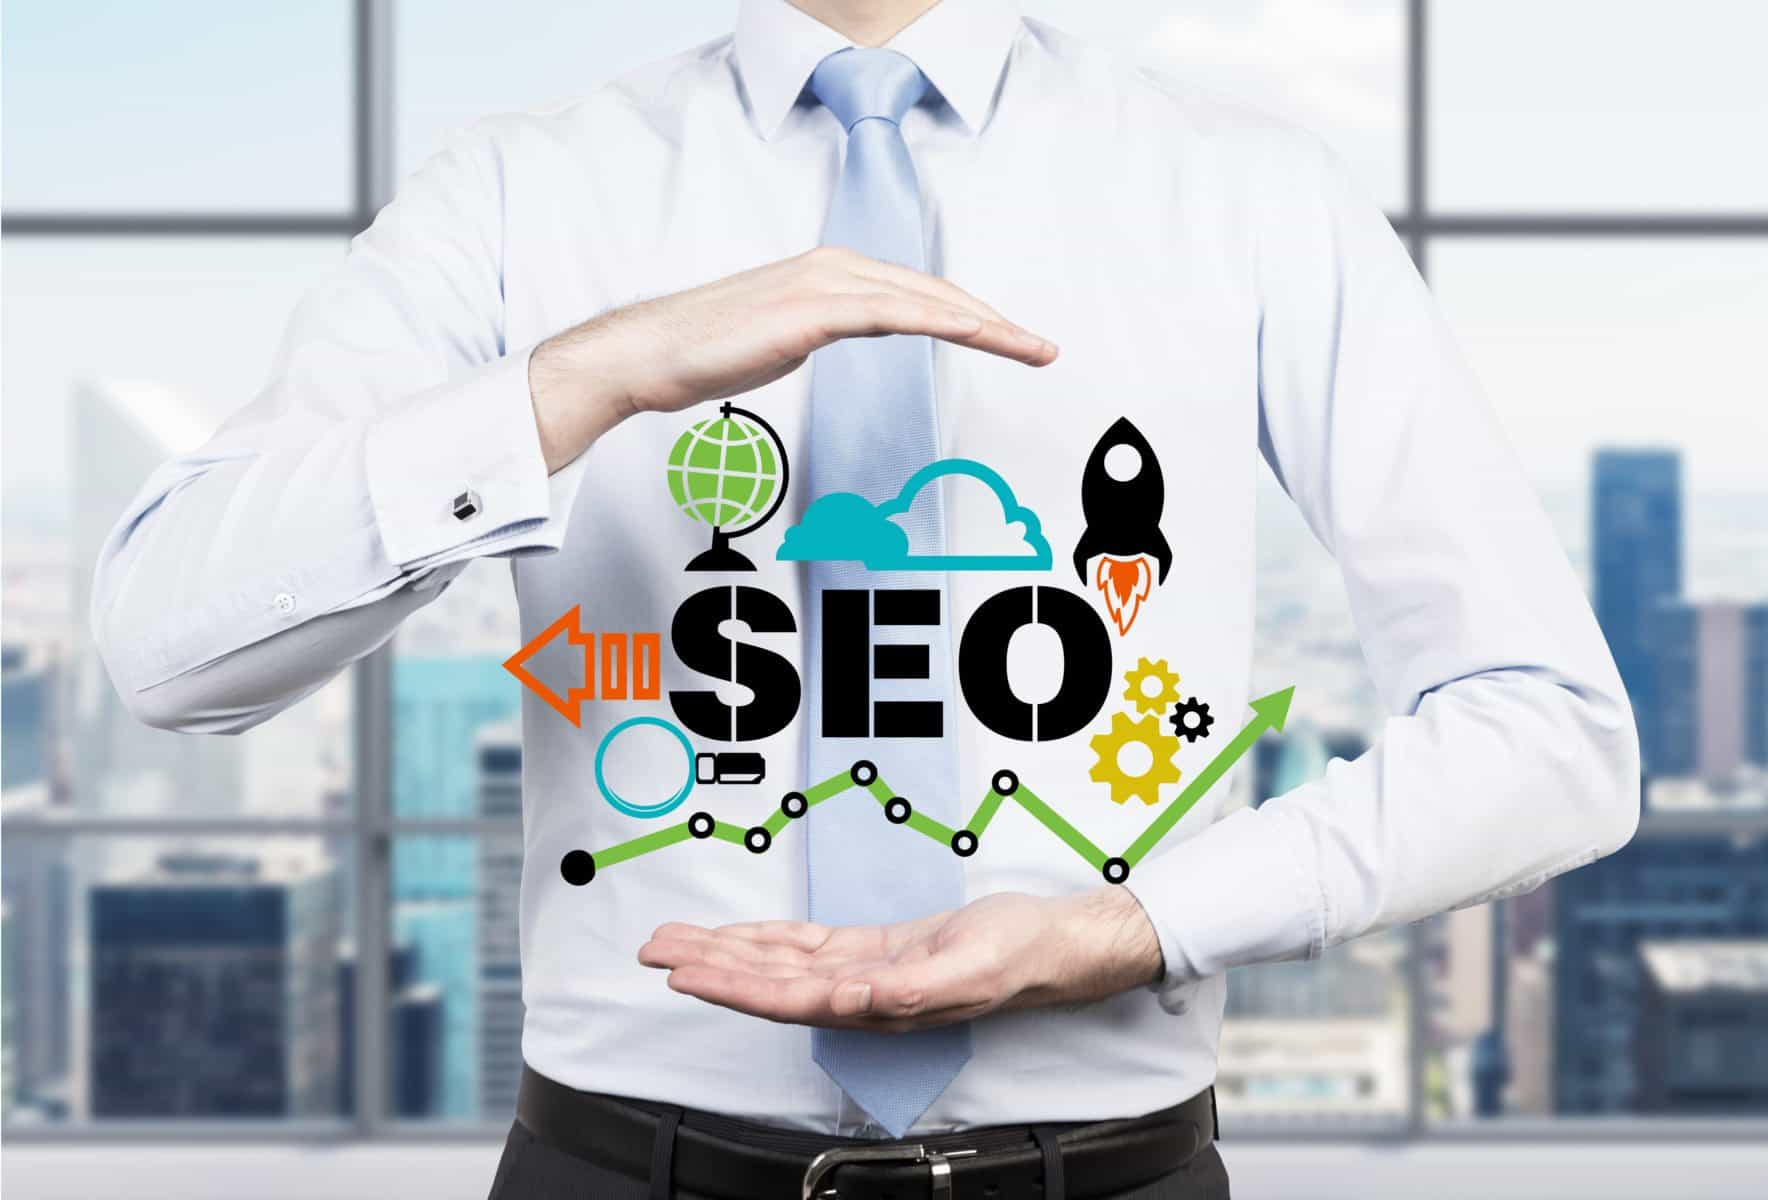 9 Top SEO Ranking Factors: Does your website have what it takes?